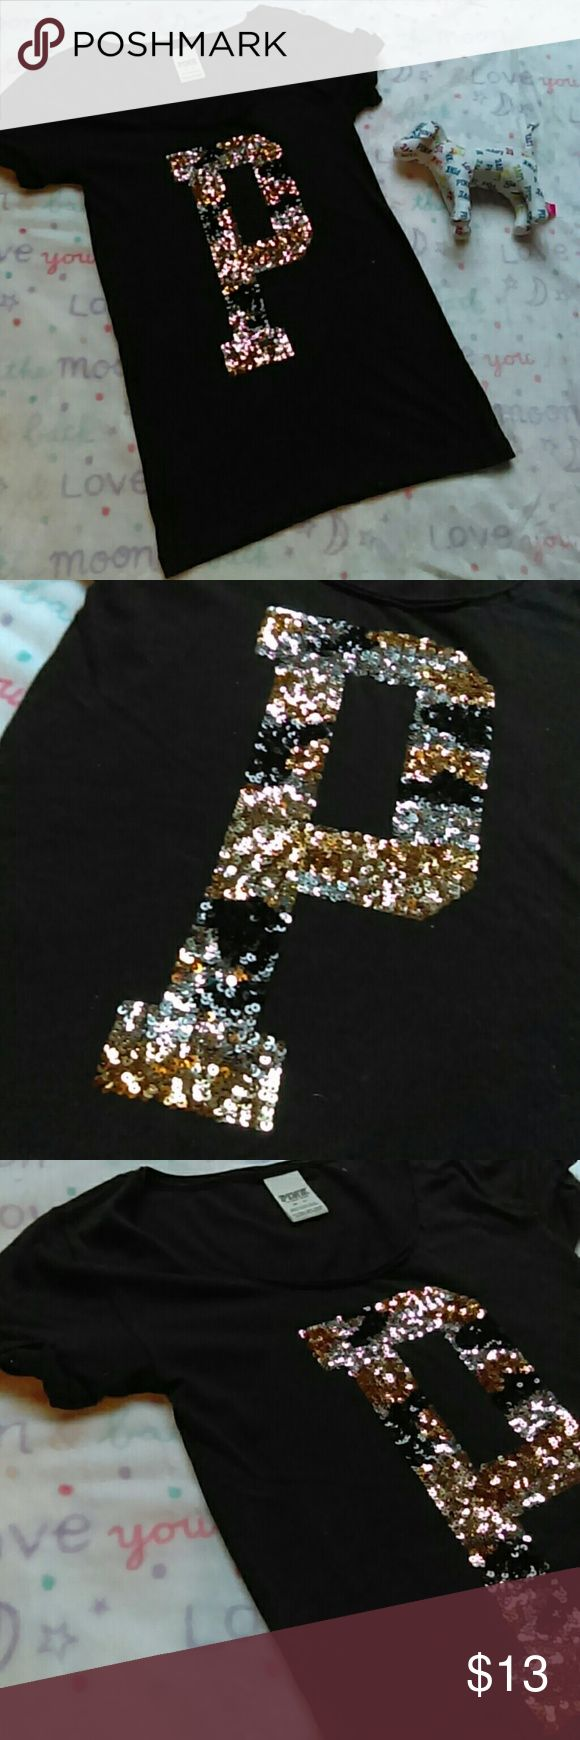 PINK Sequin Tee Black, gold and silver tee. Size extra small. In excellent condition, like new without tags.  Any questions feel free to ask. Thanks for viewing. Happy poshing! PINK Victoria's Secret Tops Tees - Short Sleeve